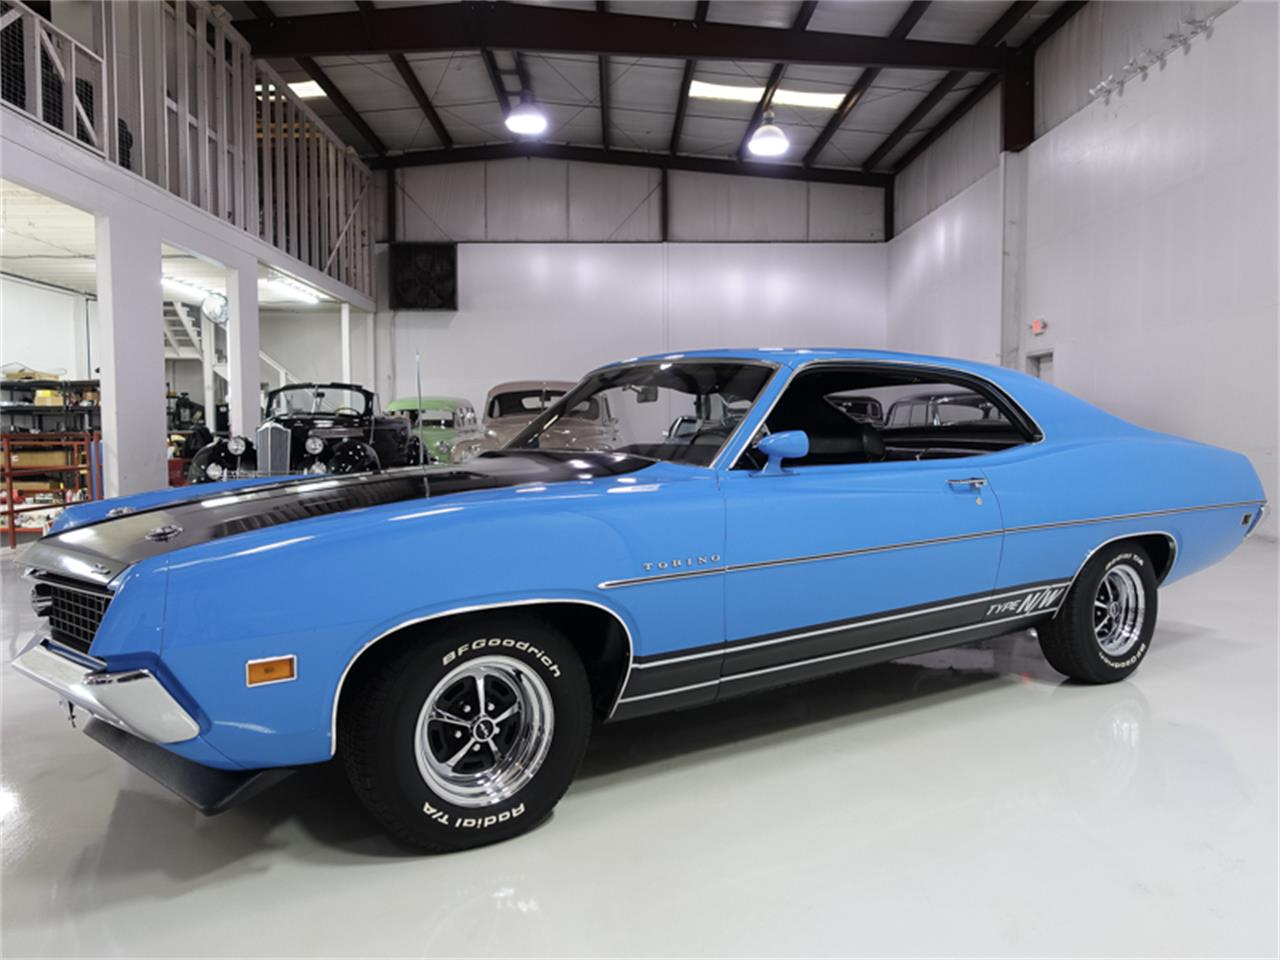 Large Picture of '70 Torino located in Missouri Offered by Daniel Schmitt & Co. - MSON